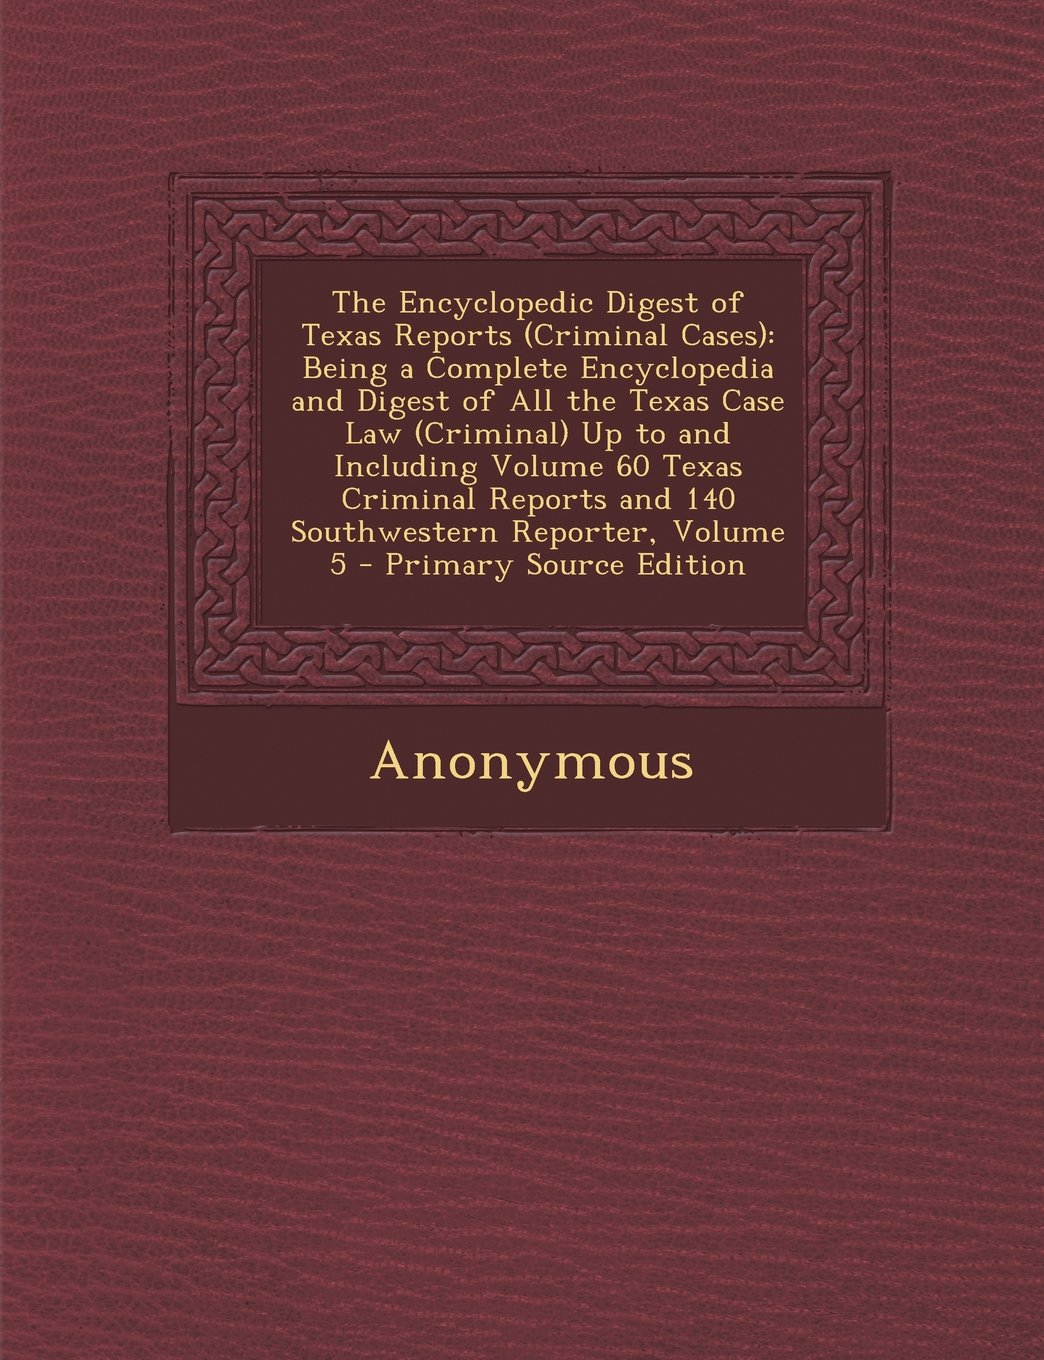 The Encyclopedic Digest of Texas Reports (Criminal Cases): Being a Complete Encyclopedia and Digest of All the Texas Case Law (Criminal) Up to and Inc PDF